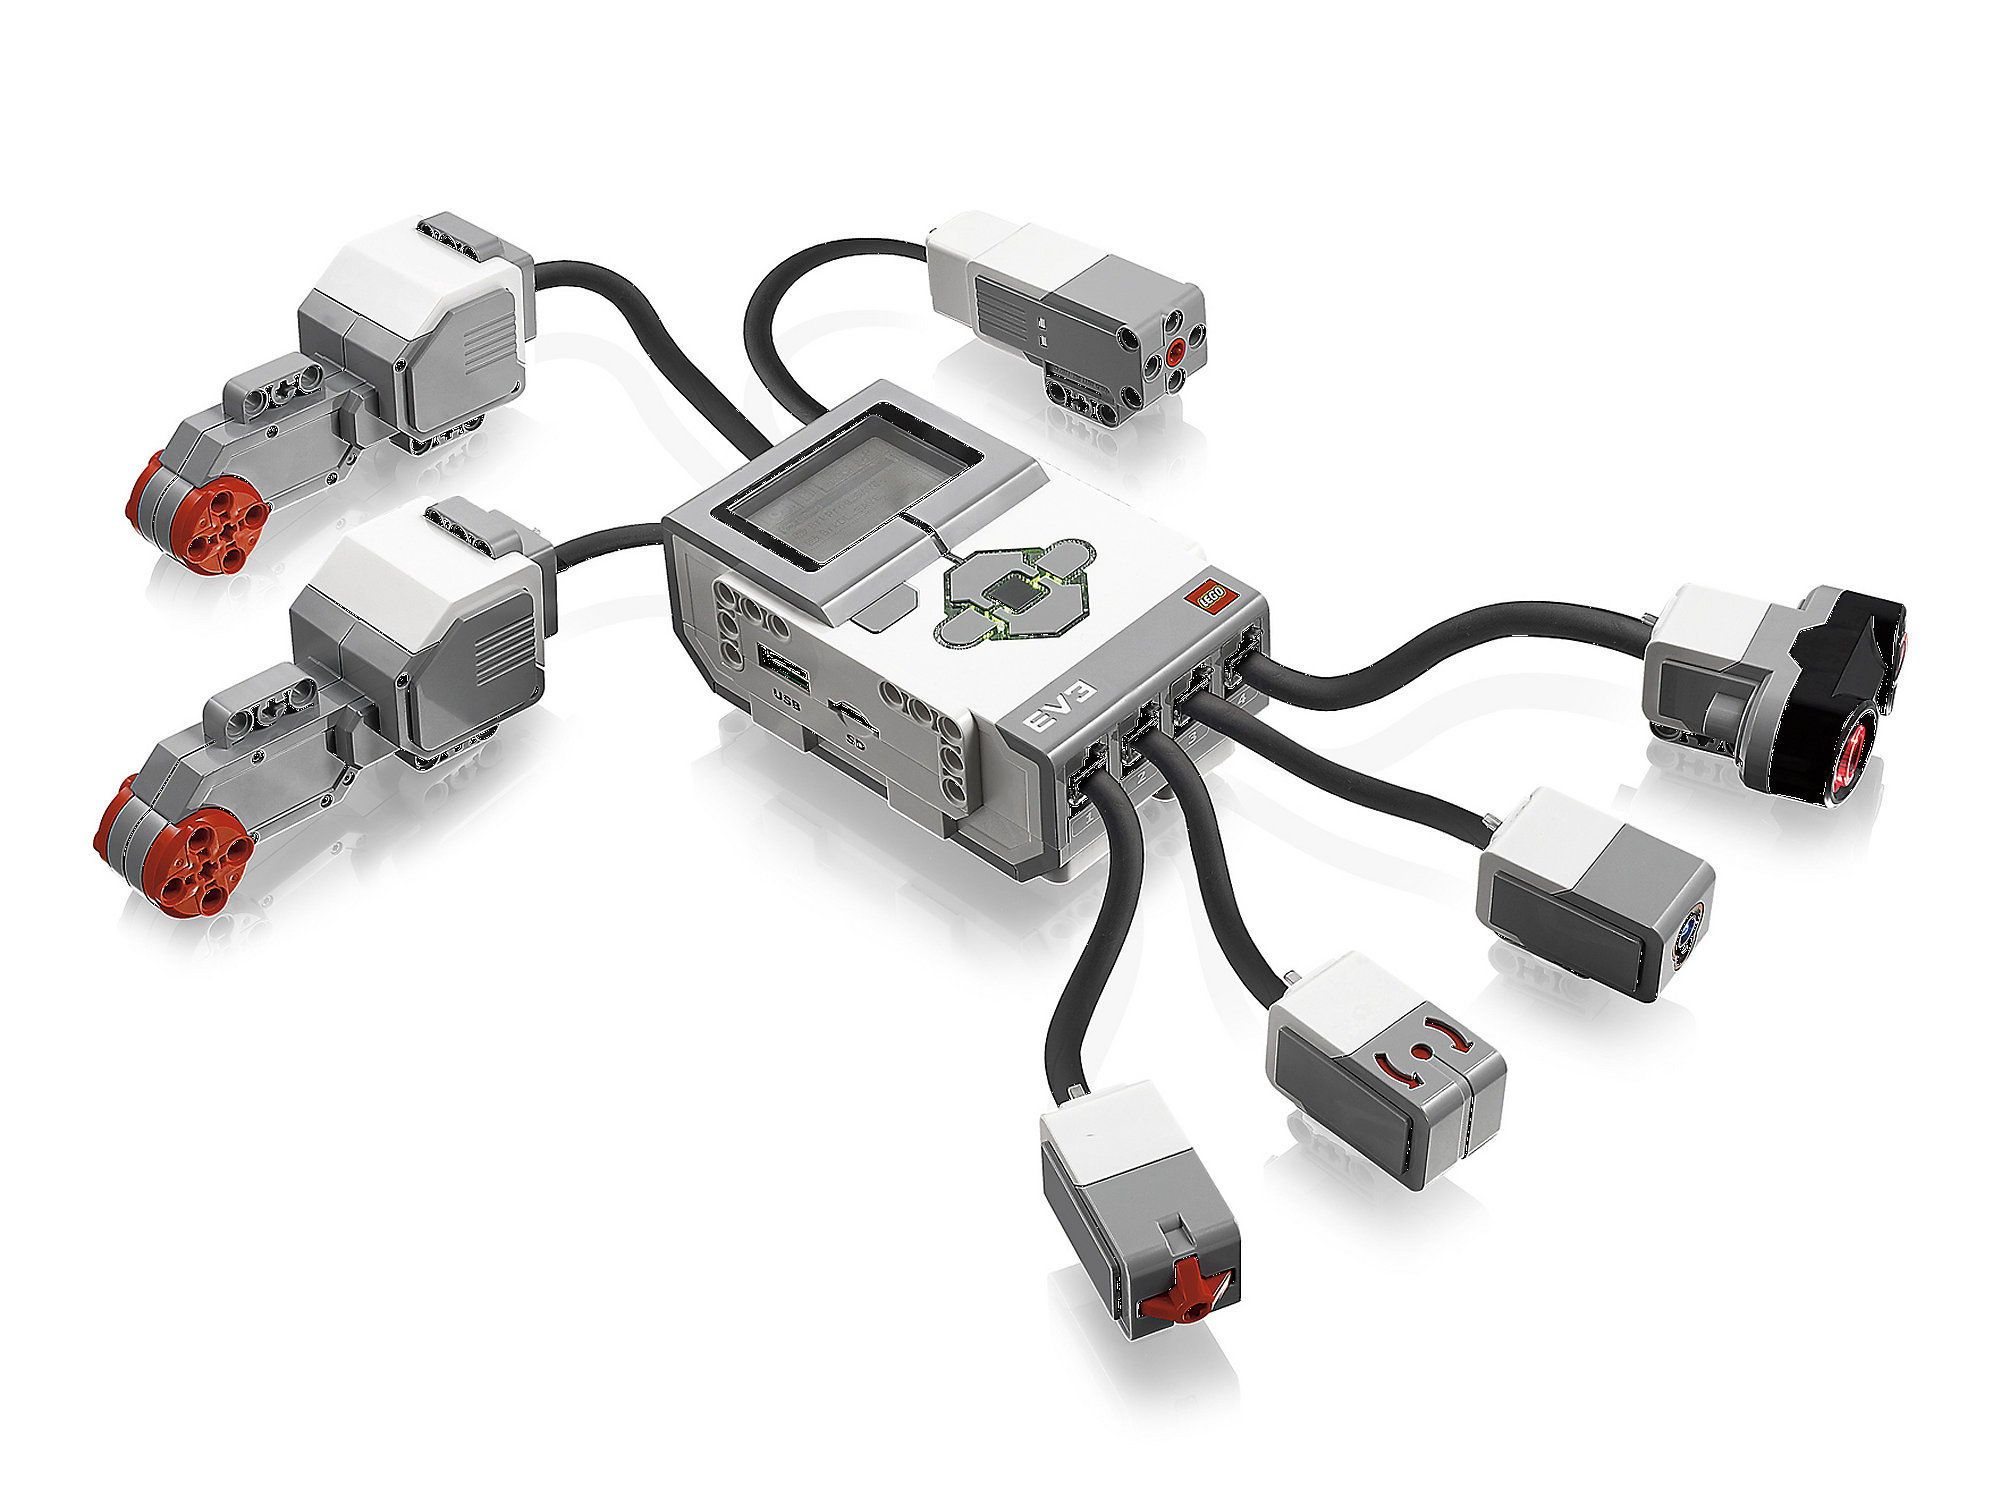 LabVIEW gets to grips with LEGO MINDSTORMS EV3 robots